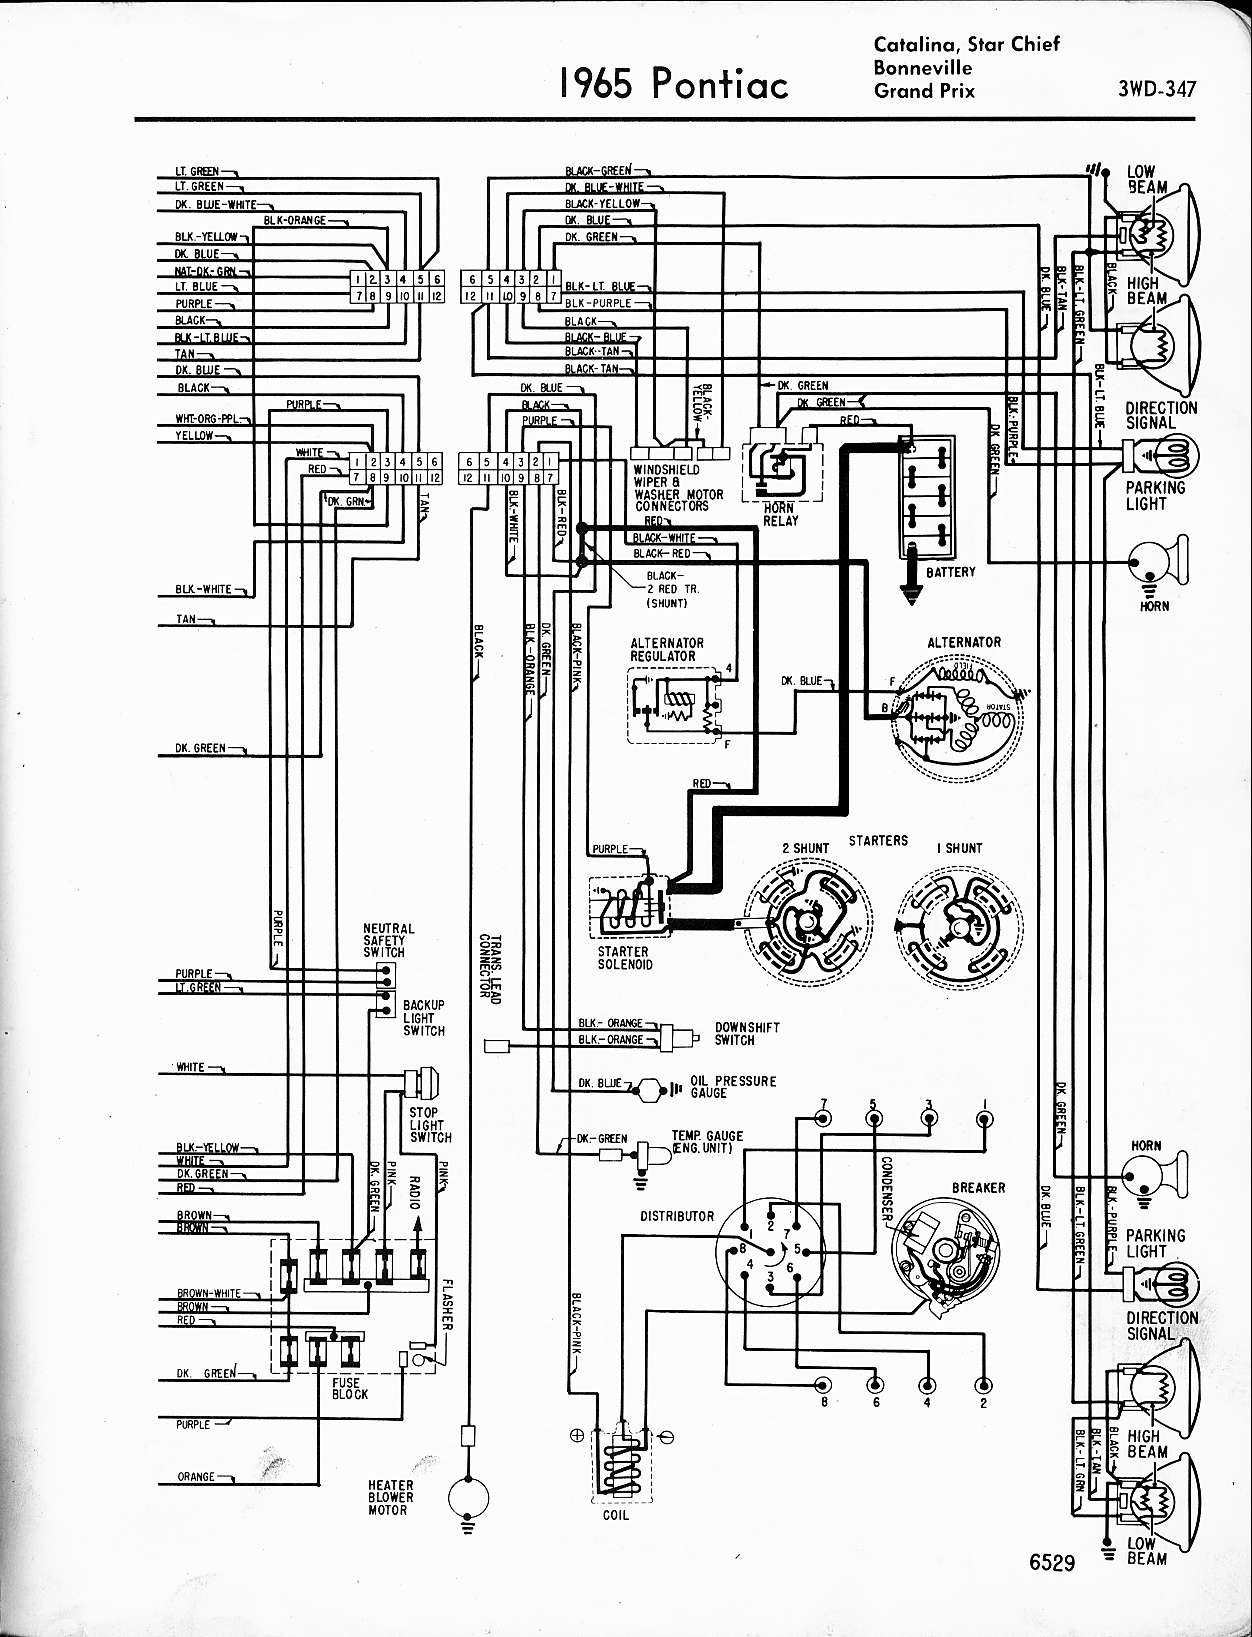 70 Gto Wiring Diagram Simple 1965 Mustang Schematic Wallace Racing Diagrams Heater Catalina Star Chief Bonneville